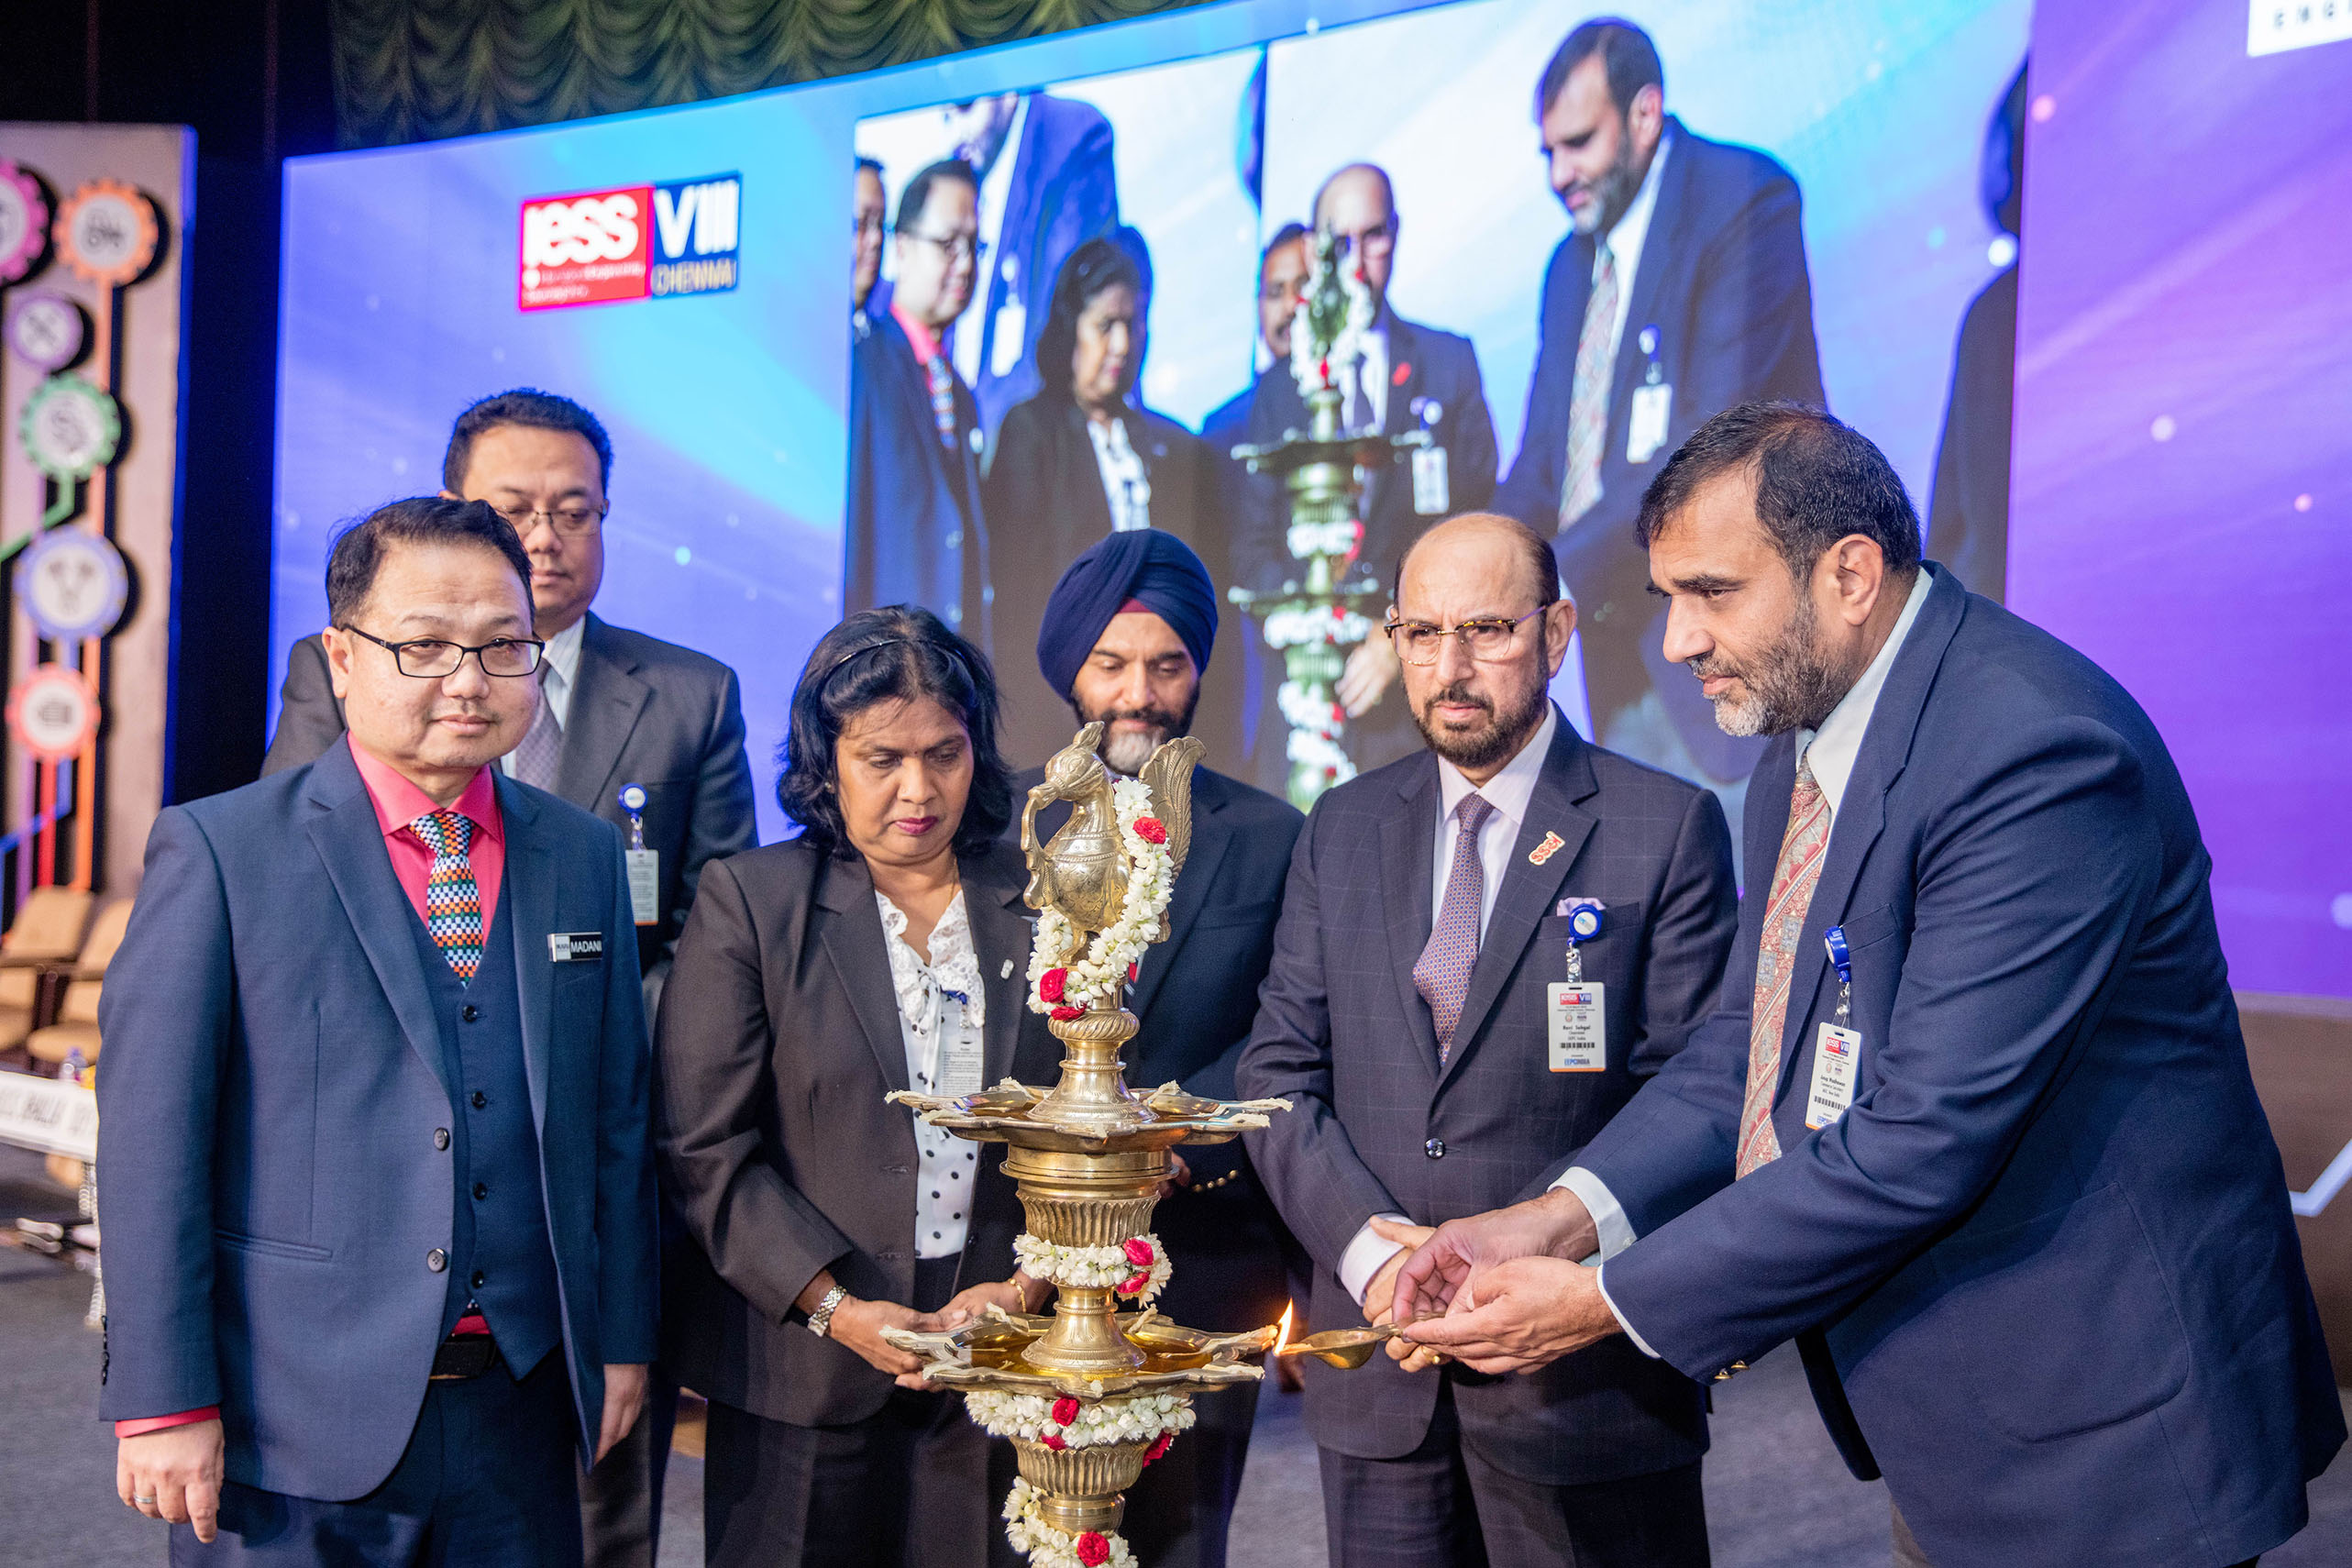 Lighting the Lamp by Dr. Anup Wadhawan, Commerce Secretary, Dept of Commerce, Ministry of Commerce and Industry, Govt of India; (on his right)  Mr. Ravi Sehgal, Chairman, EEPC India, Mr. B. S. Bhalla, Joint Secretary, Dept of Commerce, Ministry of Commerce and Industry; Datuk K. Talagavathi, Deputy Secretary General, Ministry of International Trade & Industry, Govt. of Malaysia and Dato� Madani Sahari, CEO, Malaysia Automotive Robotics & IoT Institute (MARii) and H.E. Dato Hidayat Abdul Hamid, High Commissioner of Malaysia present at this Ceremony.